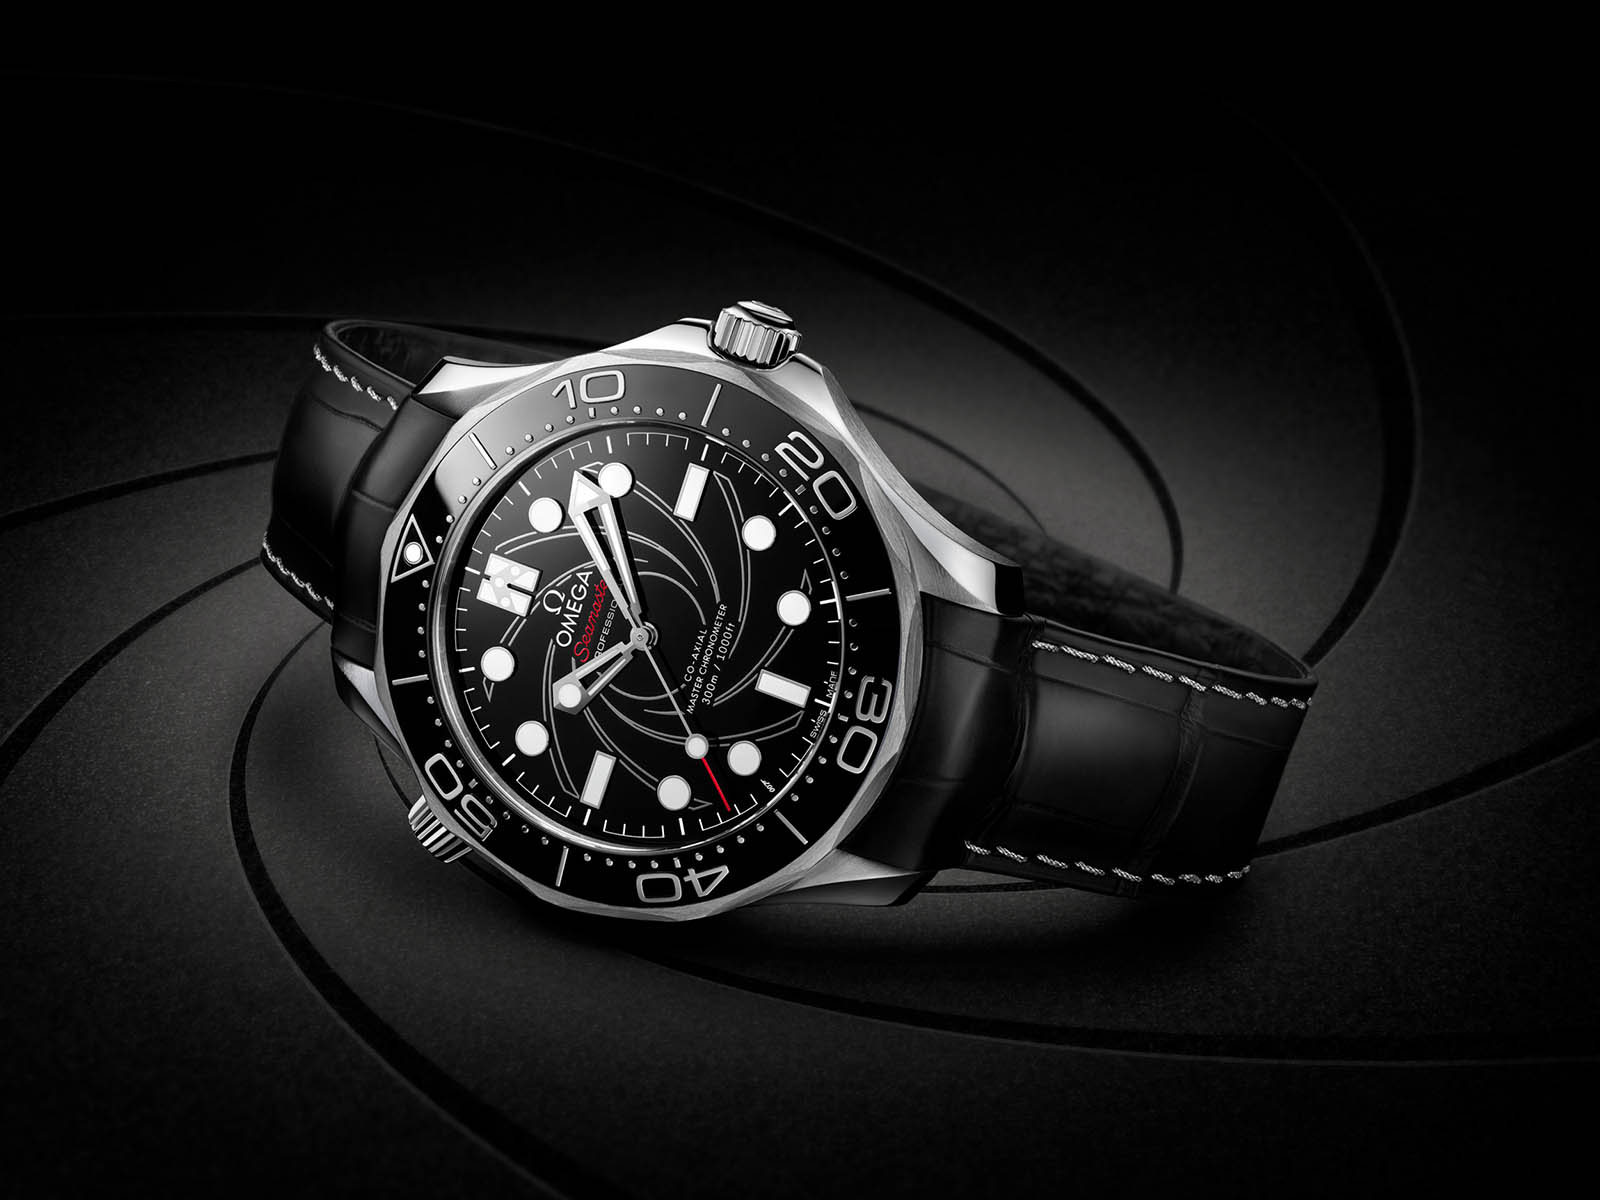 210-93-42-20-01-001-omega-seamaster-diver-300m-james-bond-numbered-edition-1.jpg